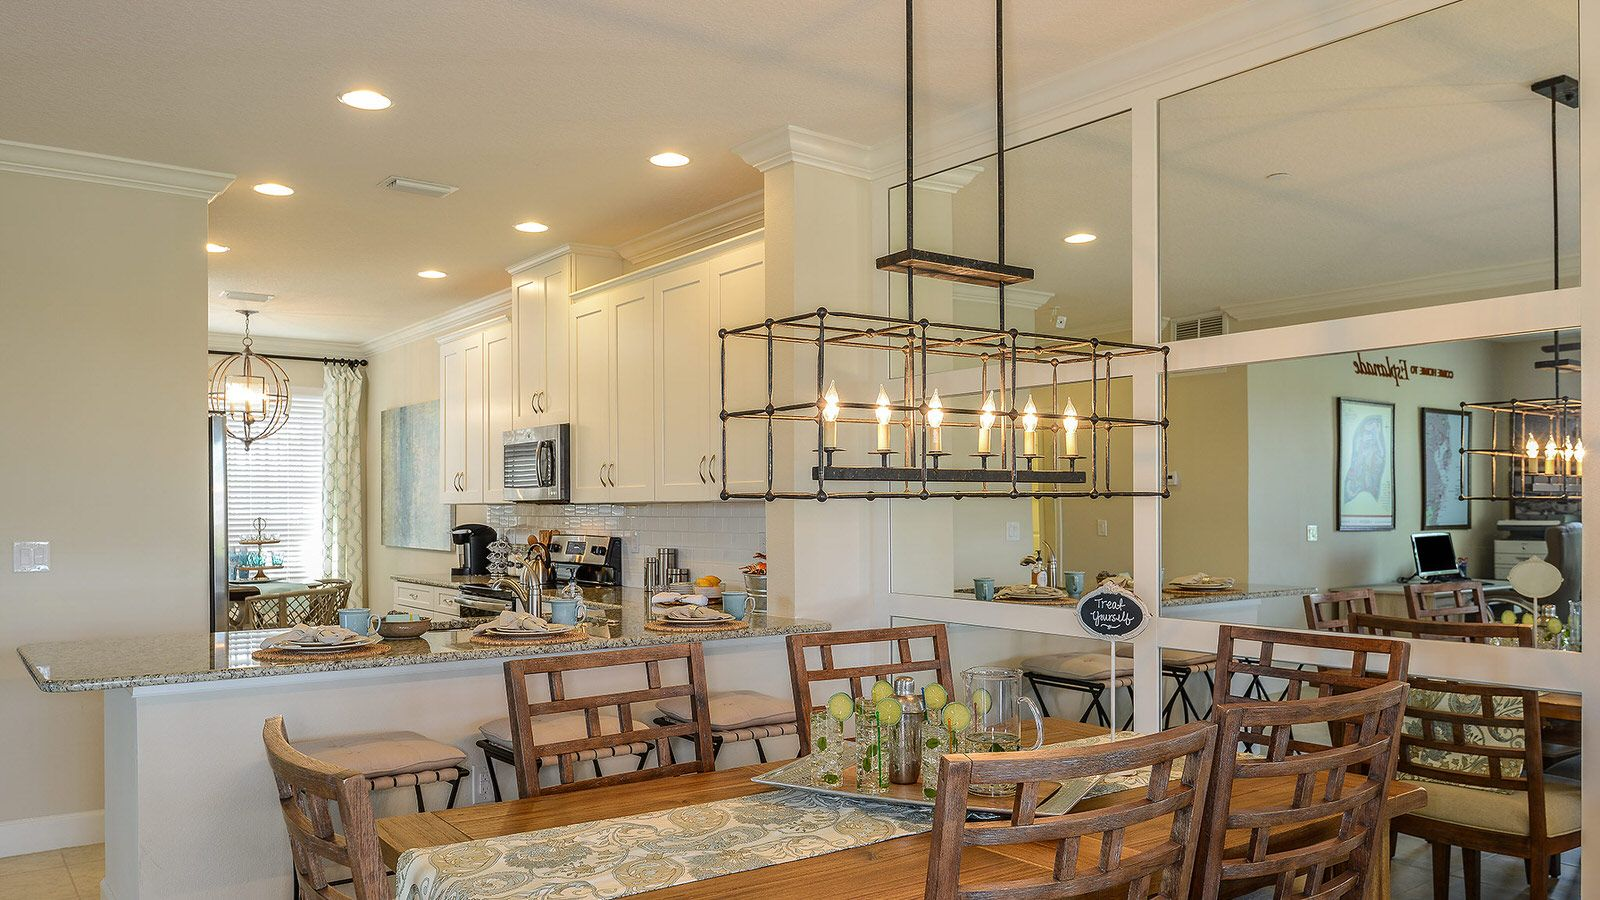 Kitchen featured in the Avanti VII By Taylor Morrison in Naples, FL